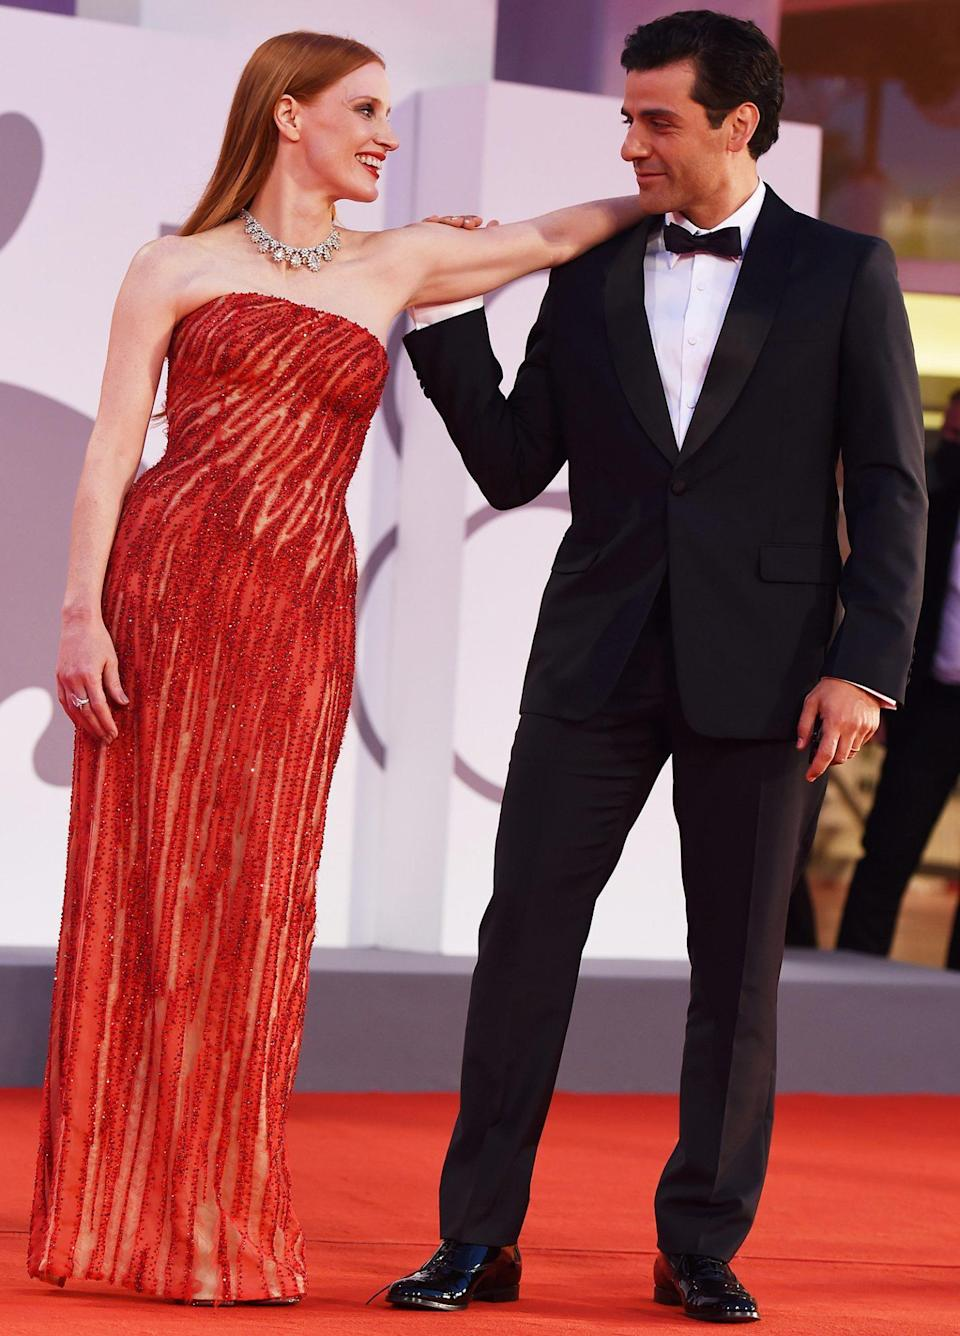 """<p>In the process, the pair, who trained at Juilliard together and have known each other for two decades, became the <a href=""""https://people.com/tv/jessica-chastain-oscar-isaac-red-carpet-chemistry-venice-film-festival/"""" rel=""""nofollow noopener"""" target=""""_blank"""" data-ylk=""""slk:talk of the Internet"""" class=""""link rapid-noclick-resp"""">talk of the Internet</a>. </p>"""